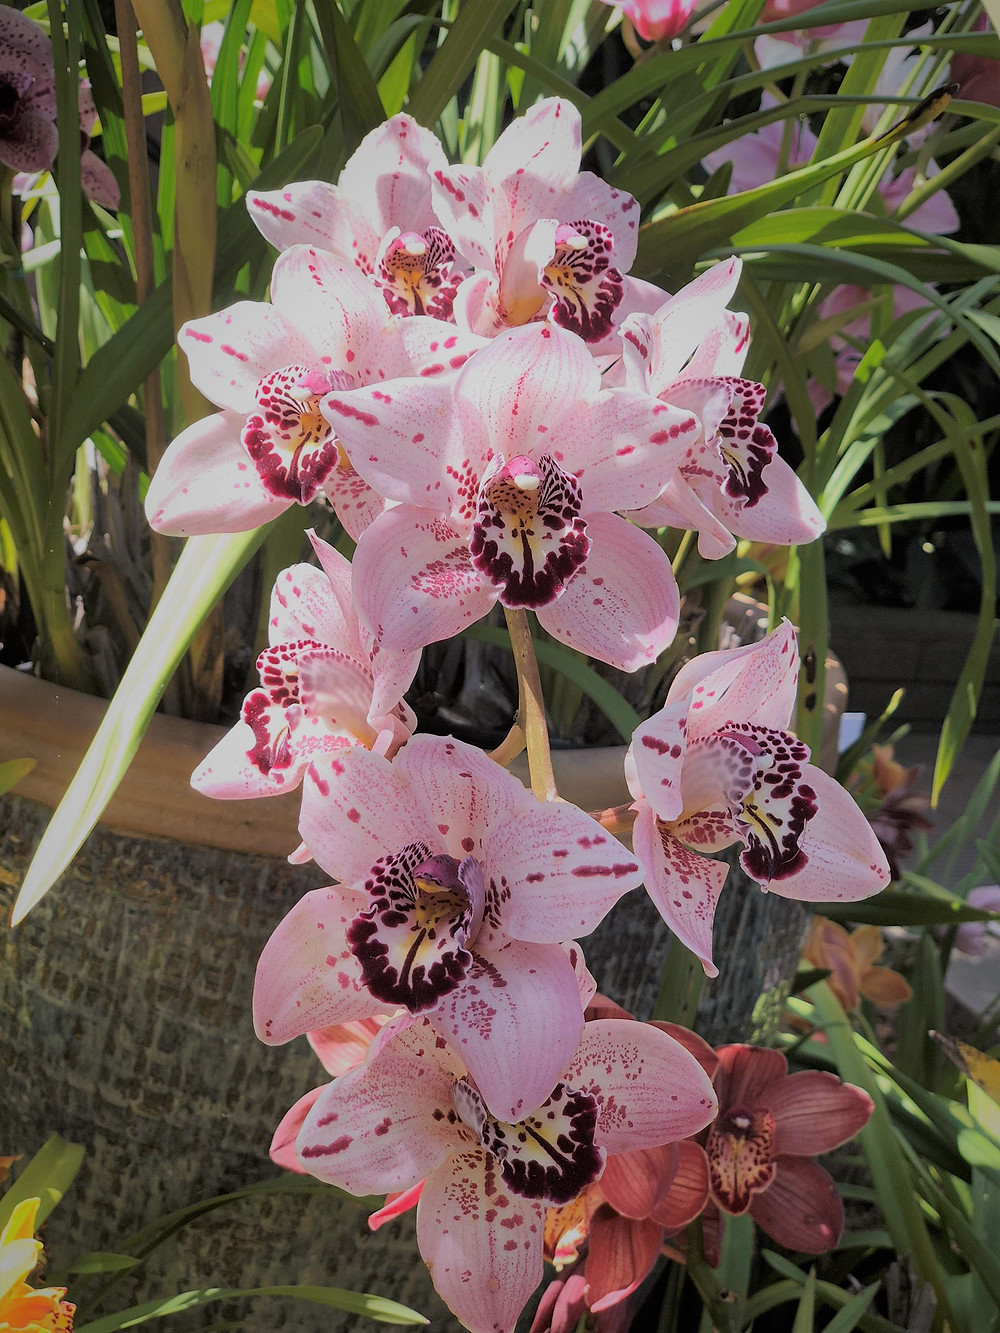 Pink orchids in the Botanical Building and Gardens in Balboa Park in San Diego